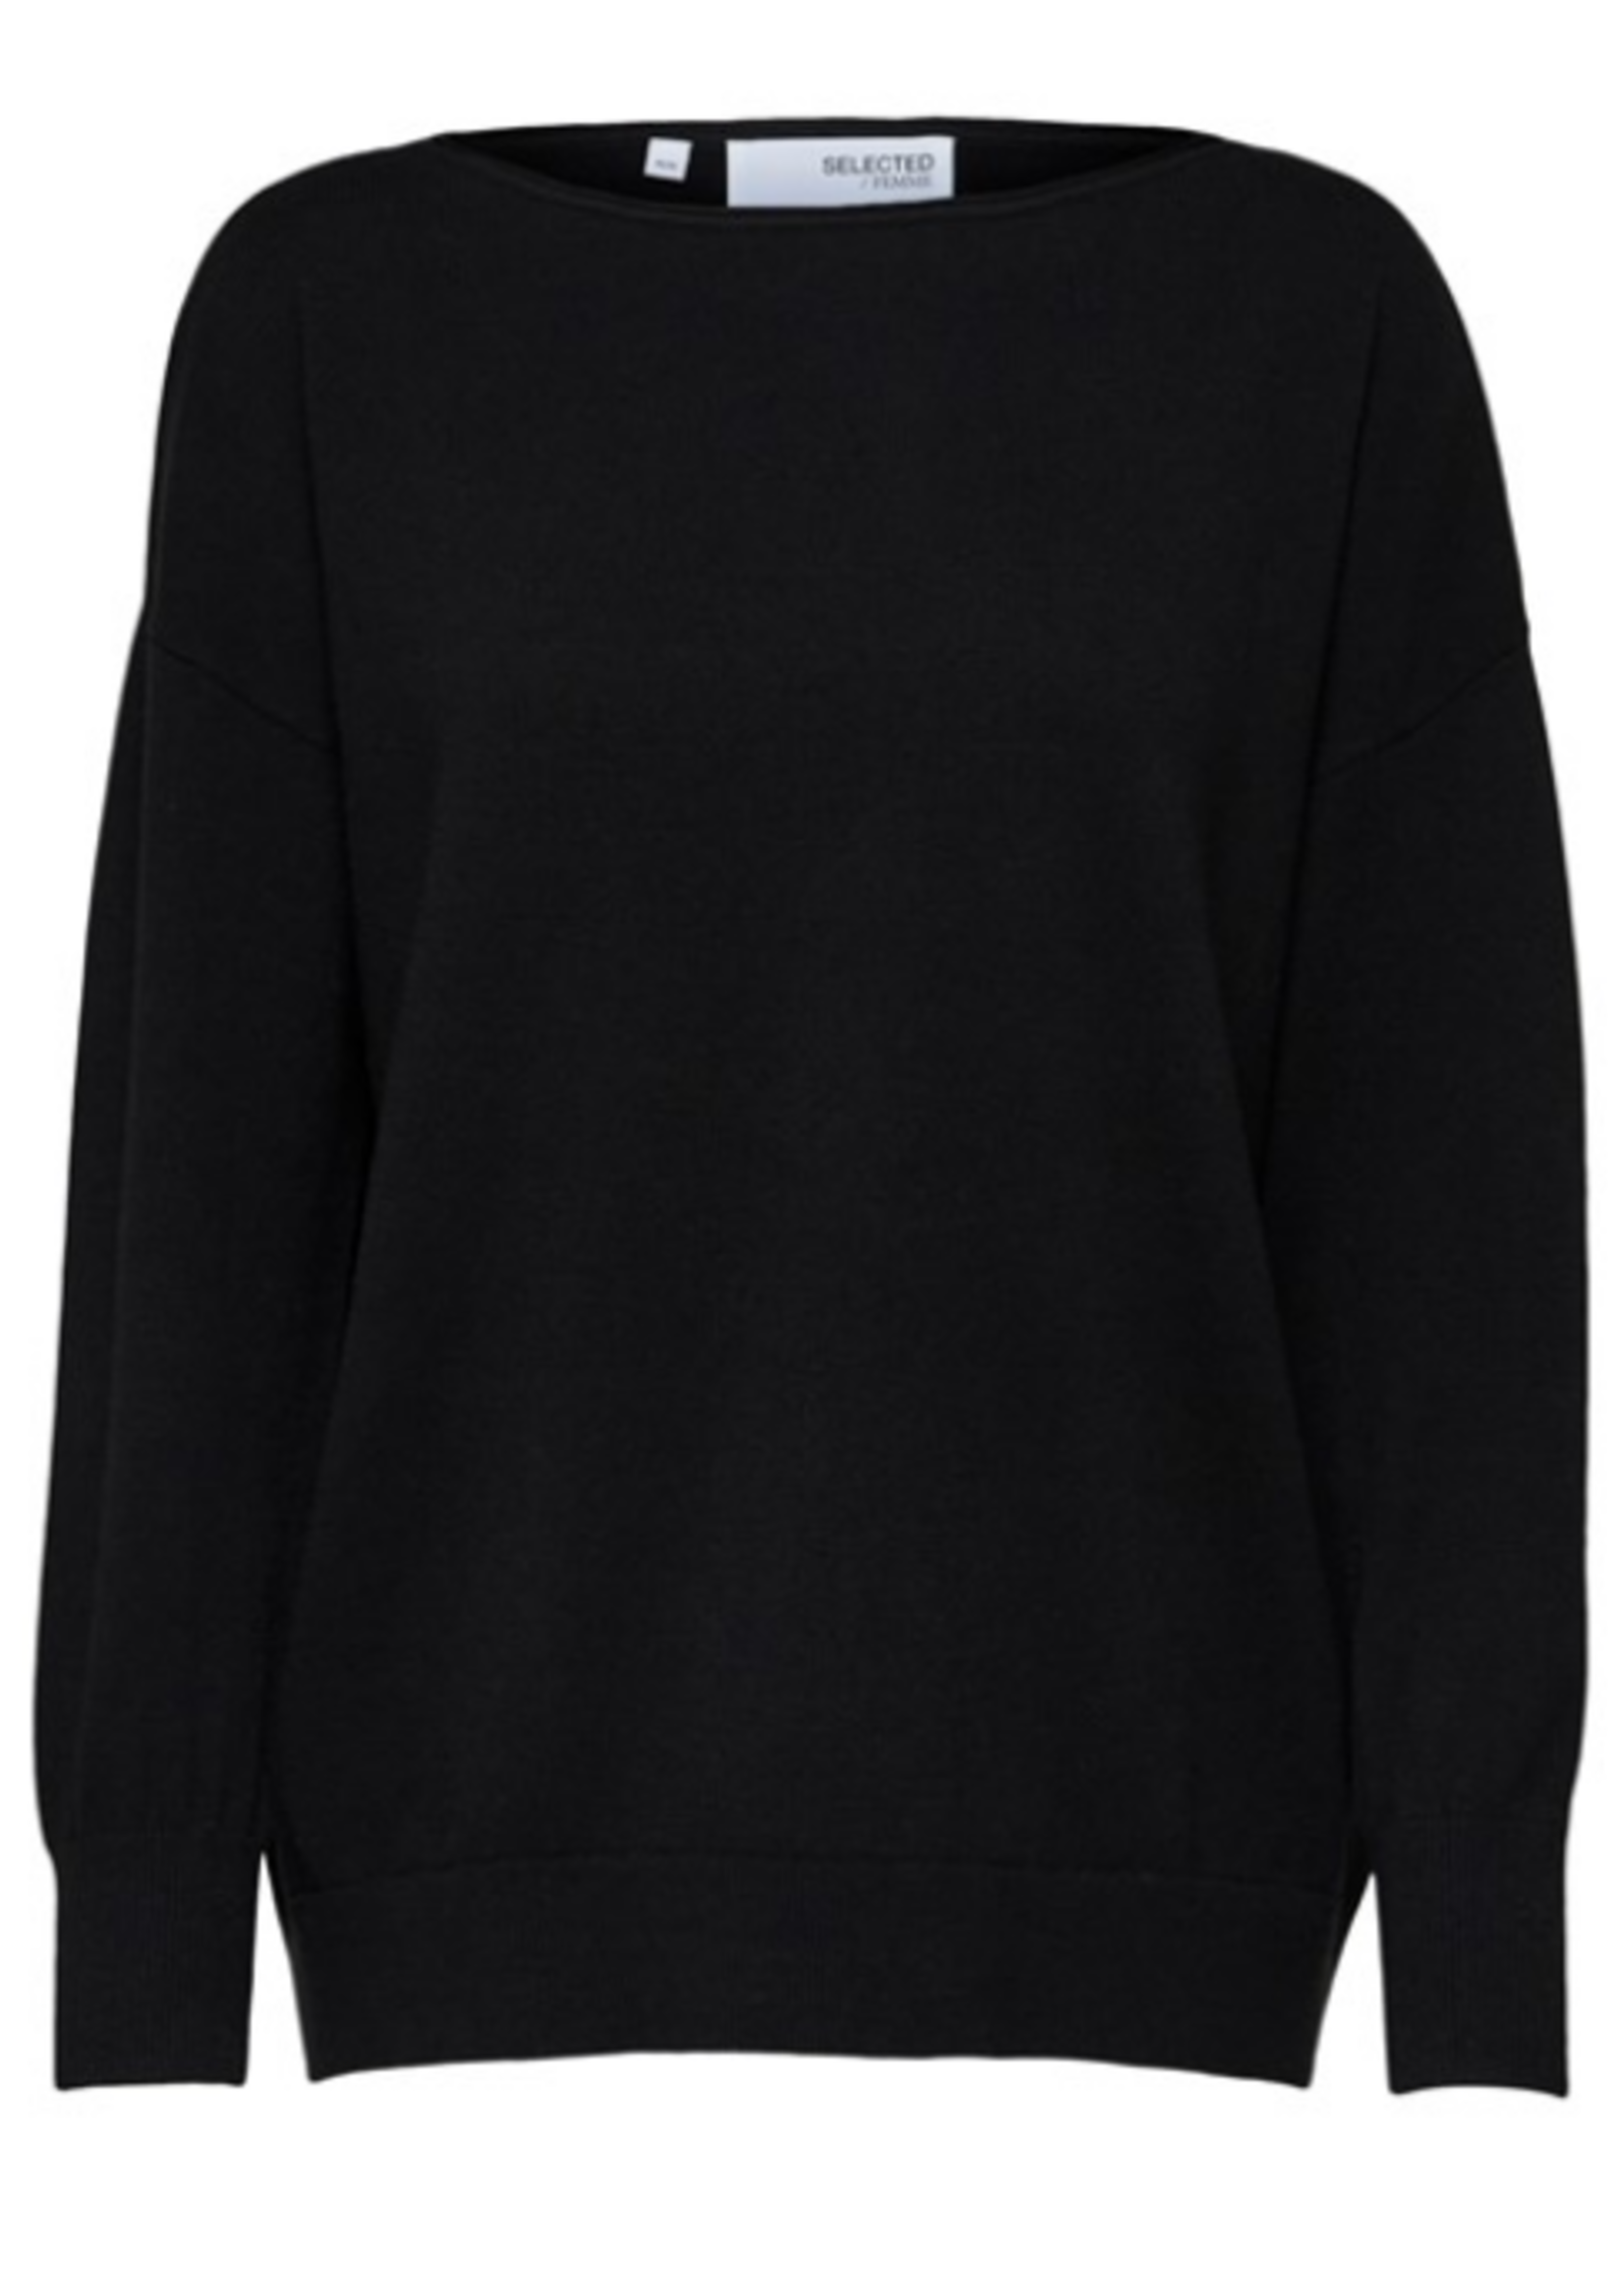 Selected Femme Inika cashmere ls knit